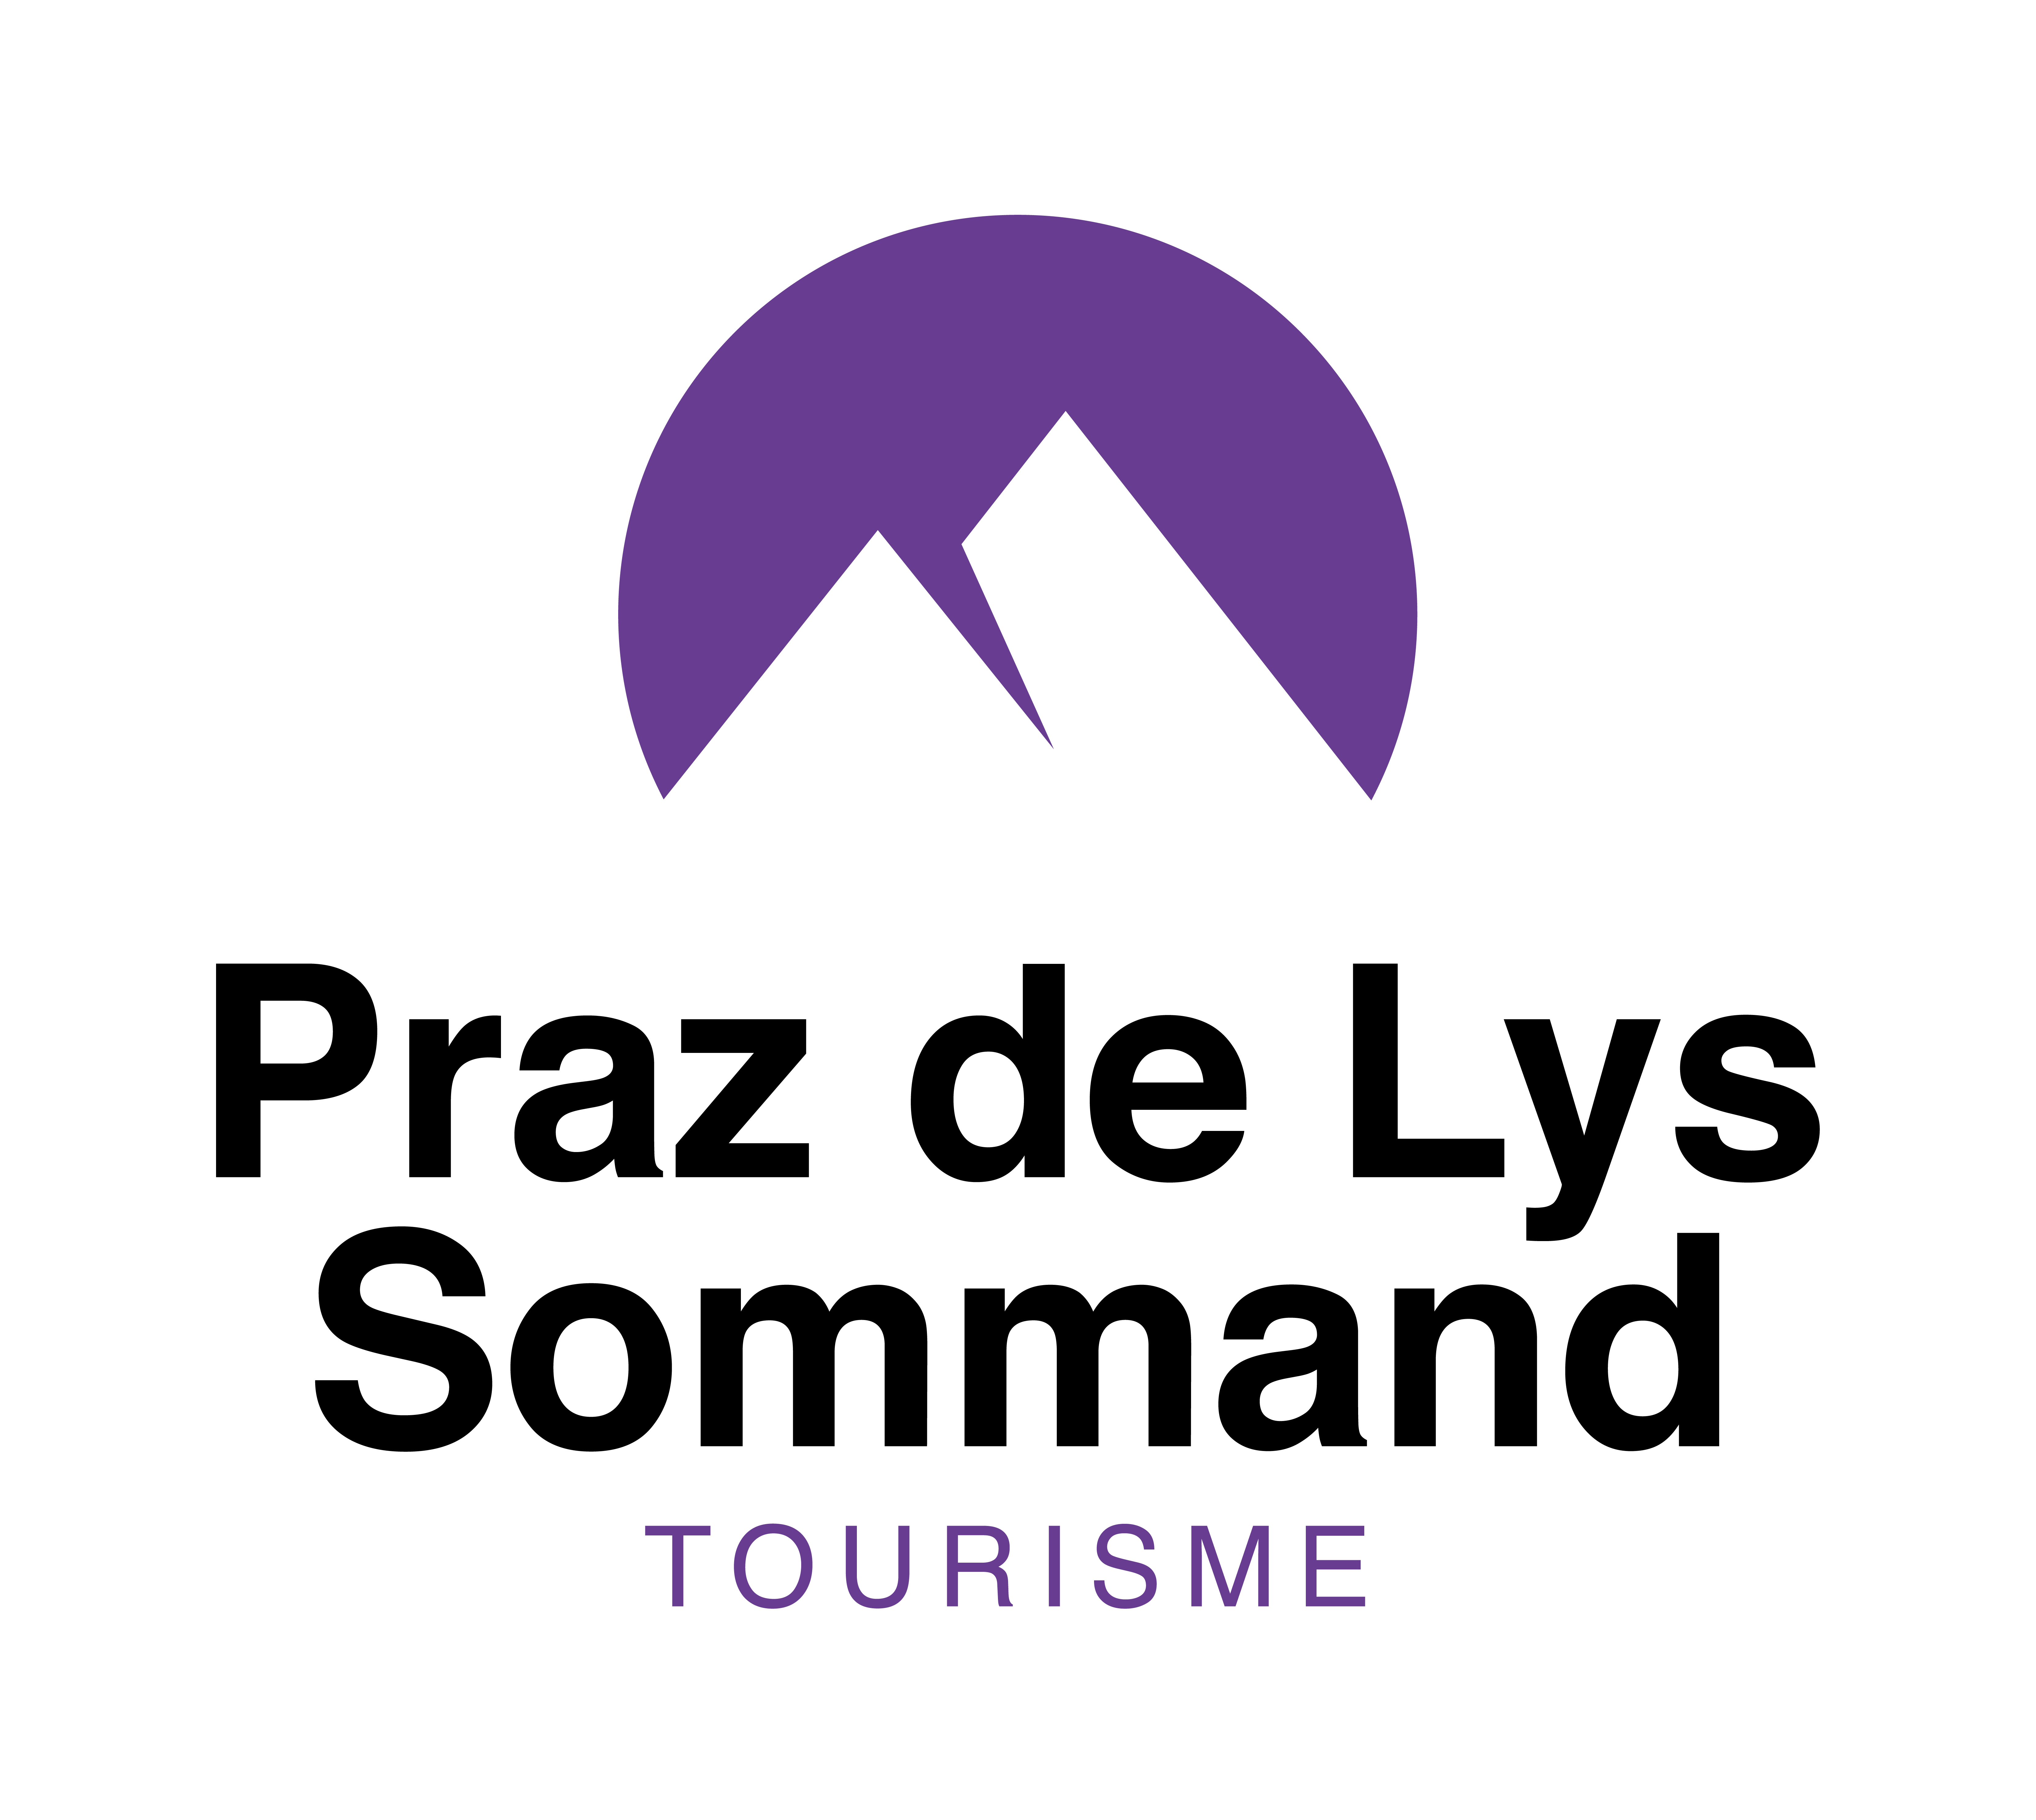 Praz de Lys Tourist Office